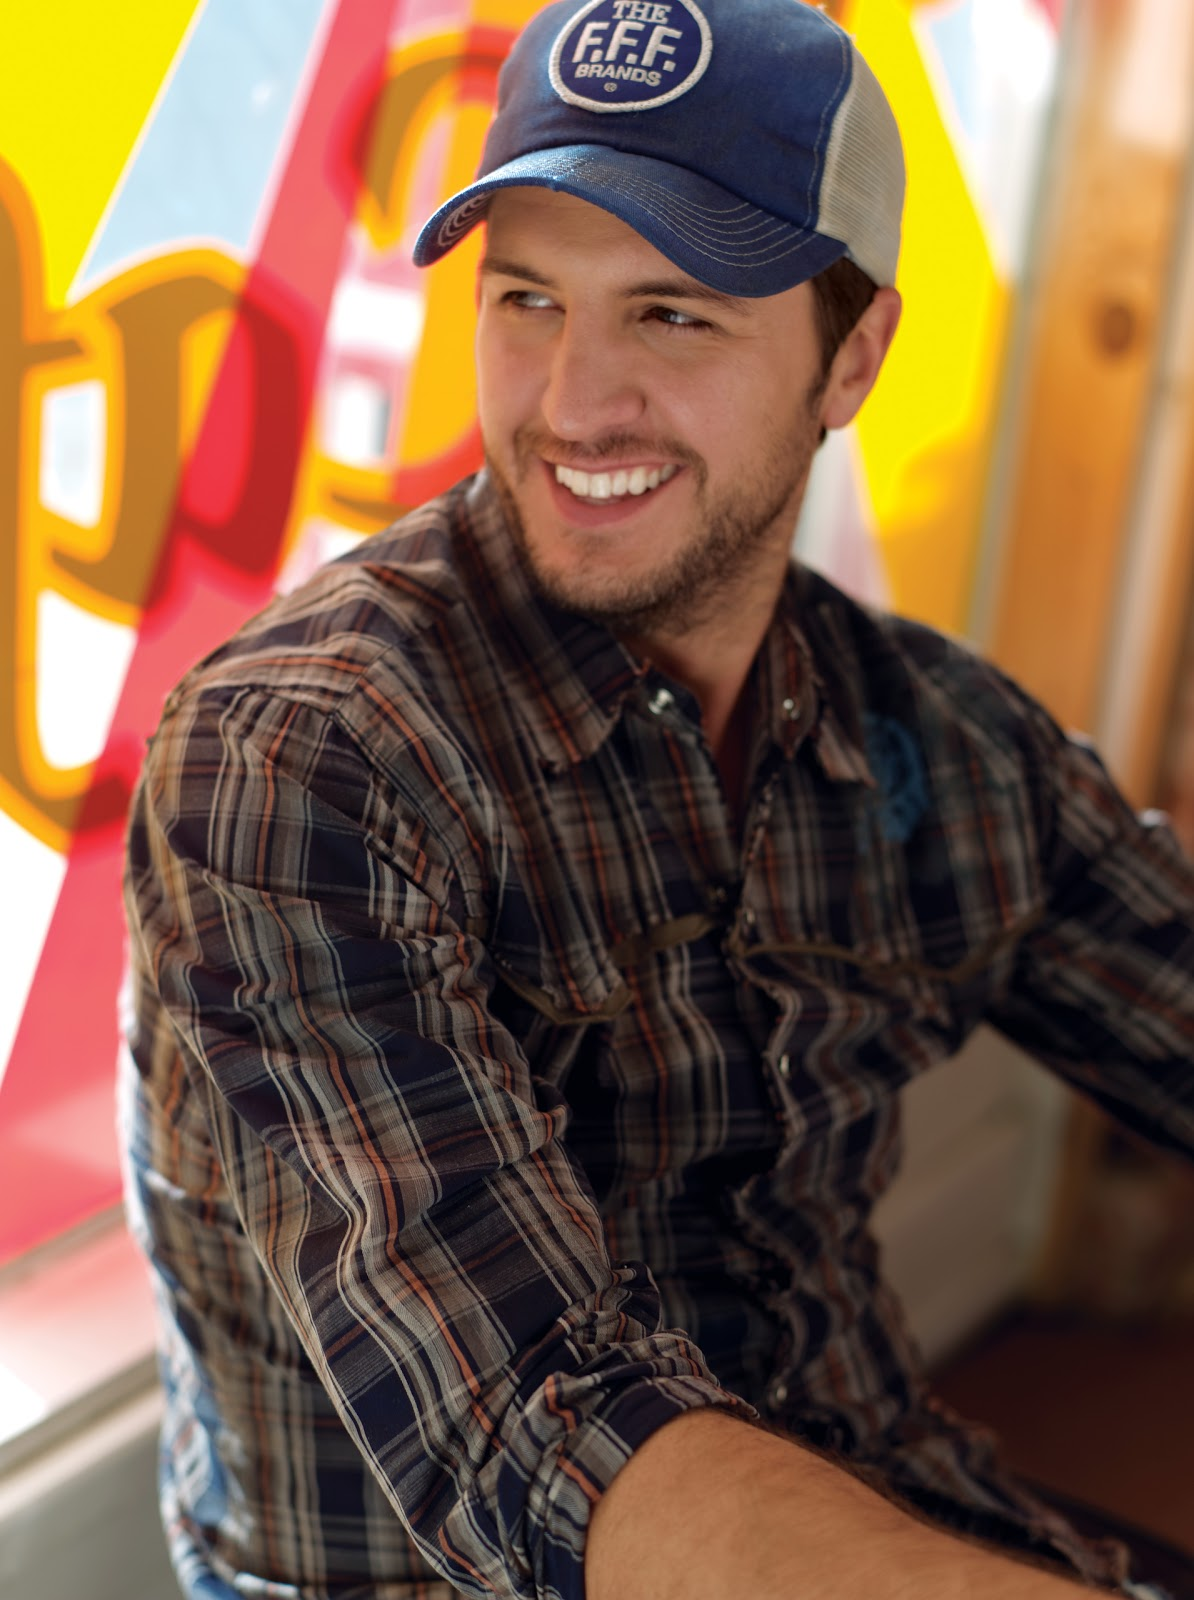 Luke bryan nra country team up for the 2010 farm tour for How many kids does luke bryan have